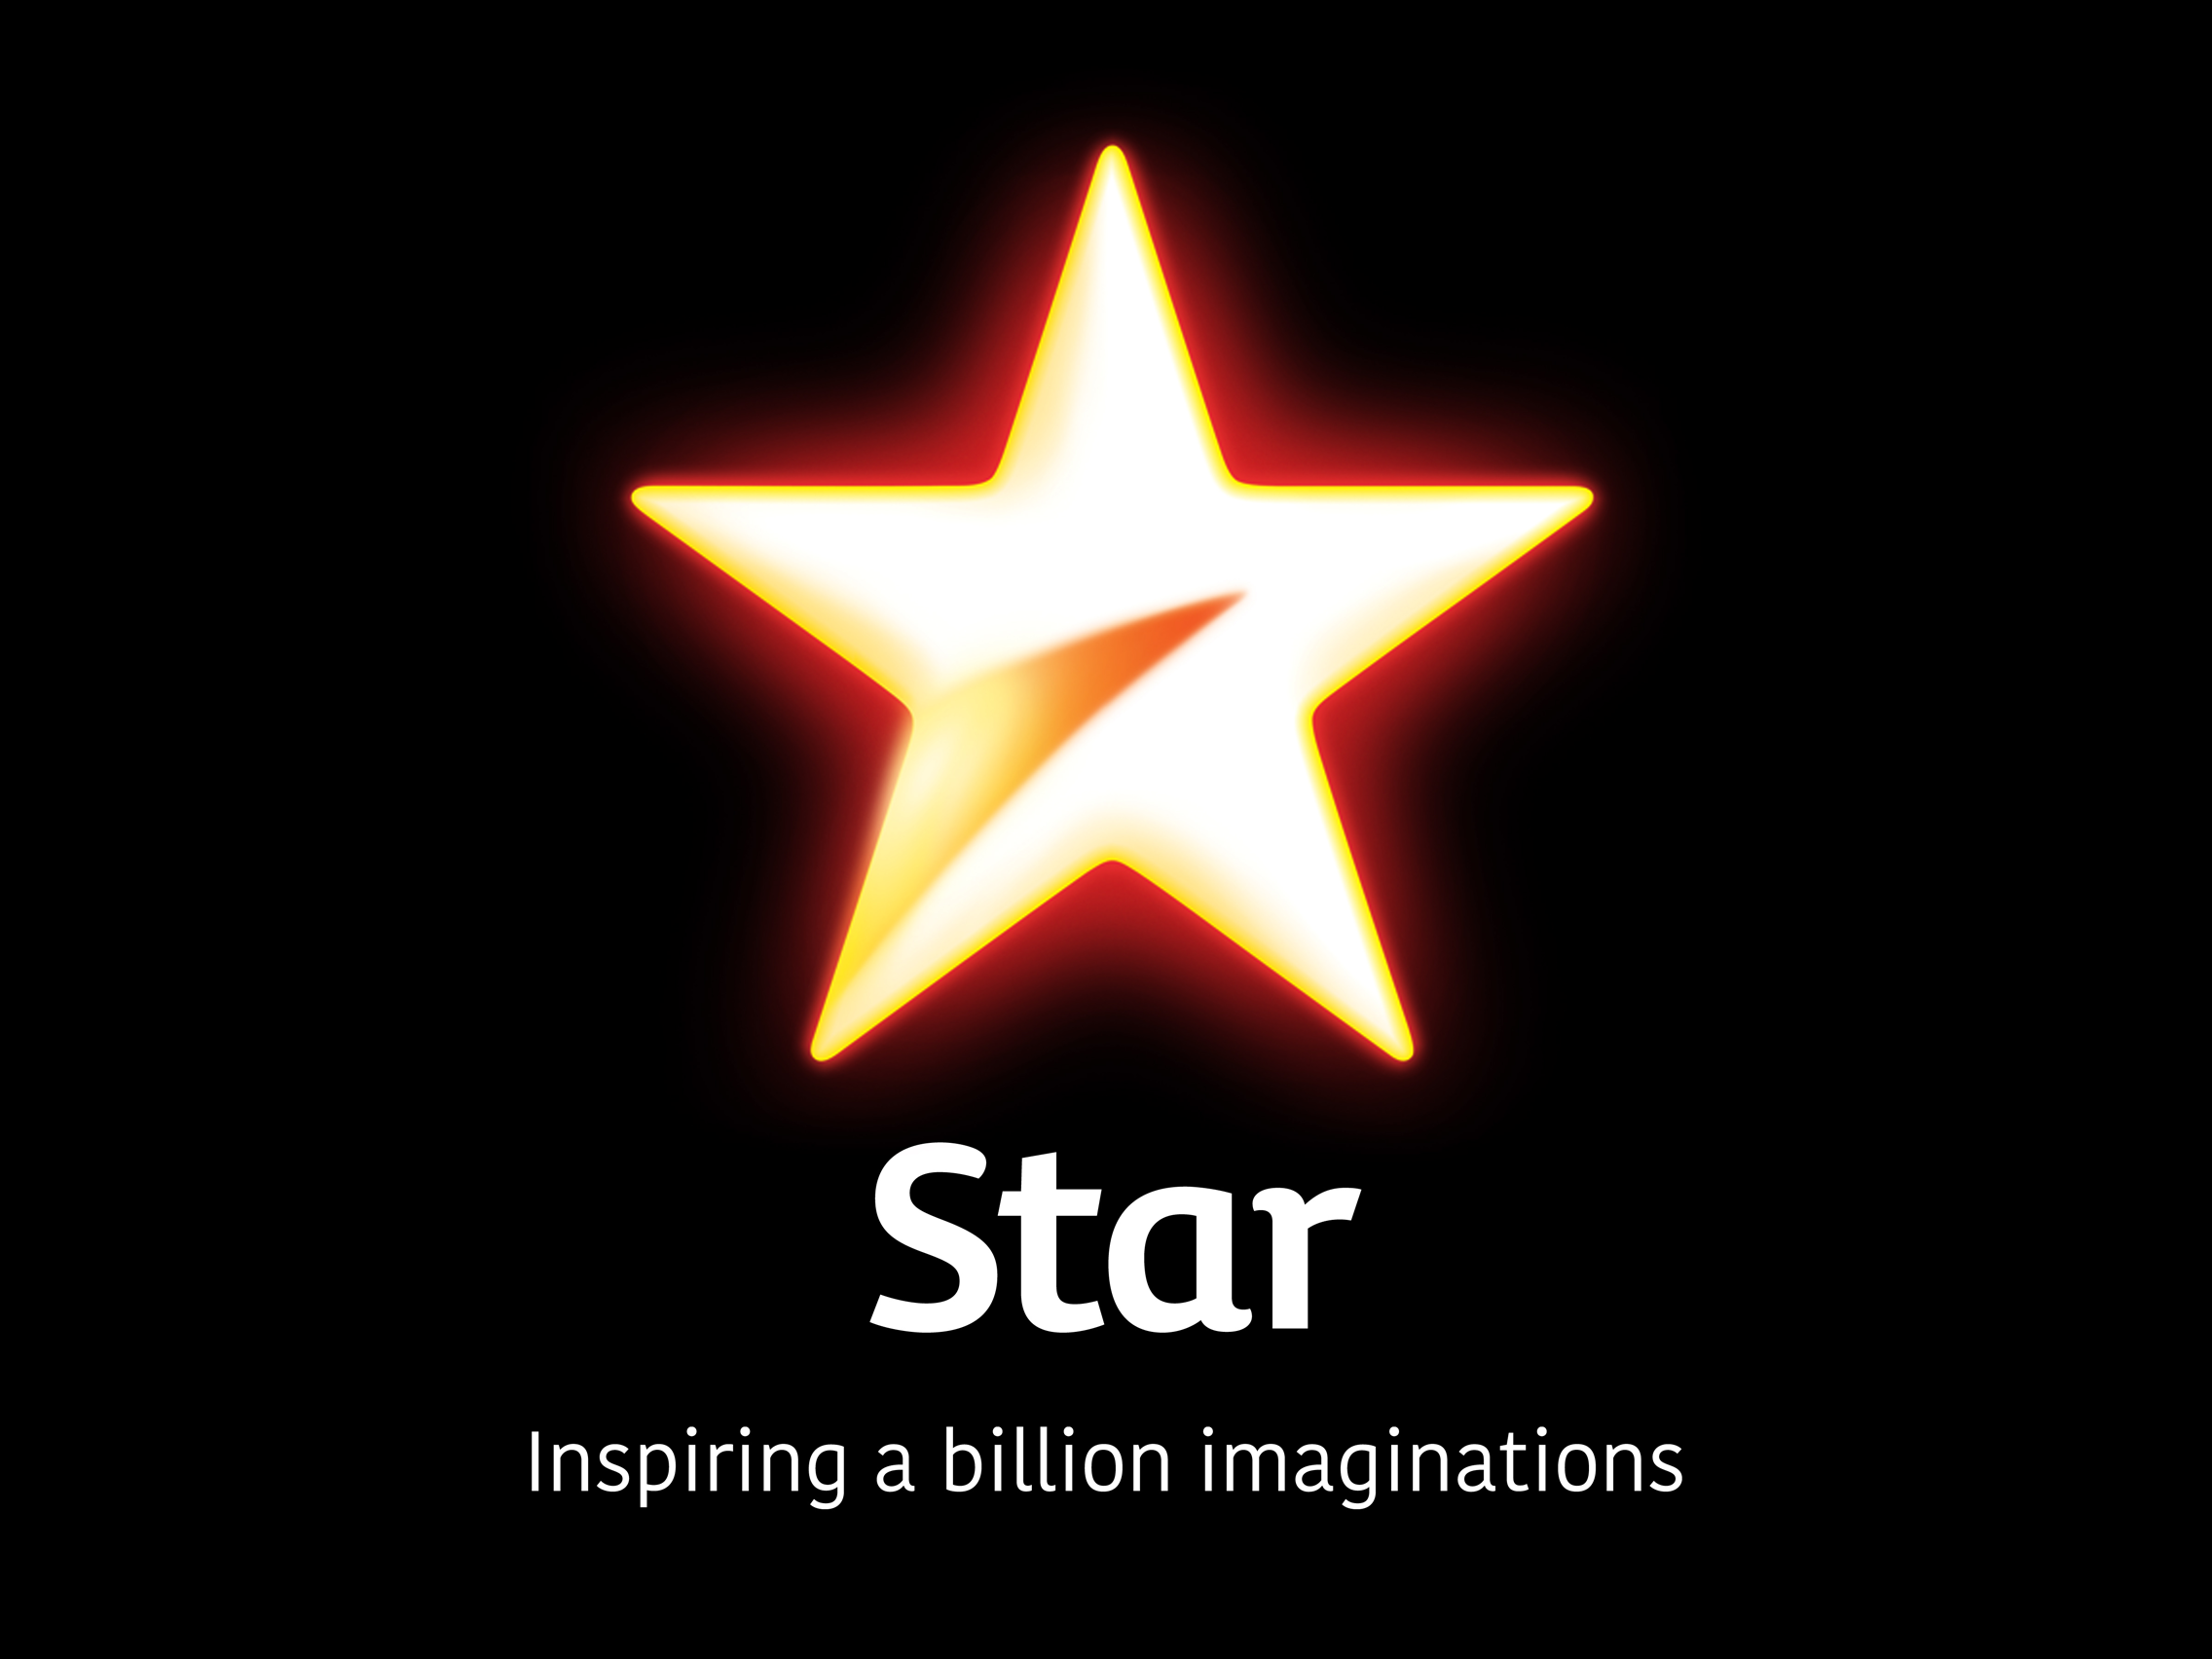 Star-TV-black-logo